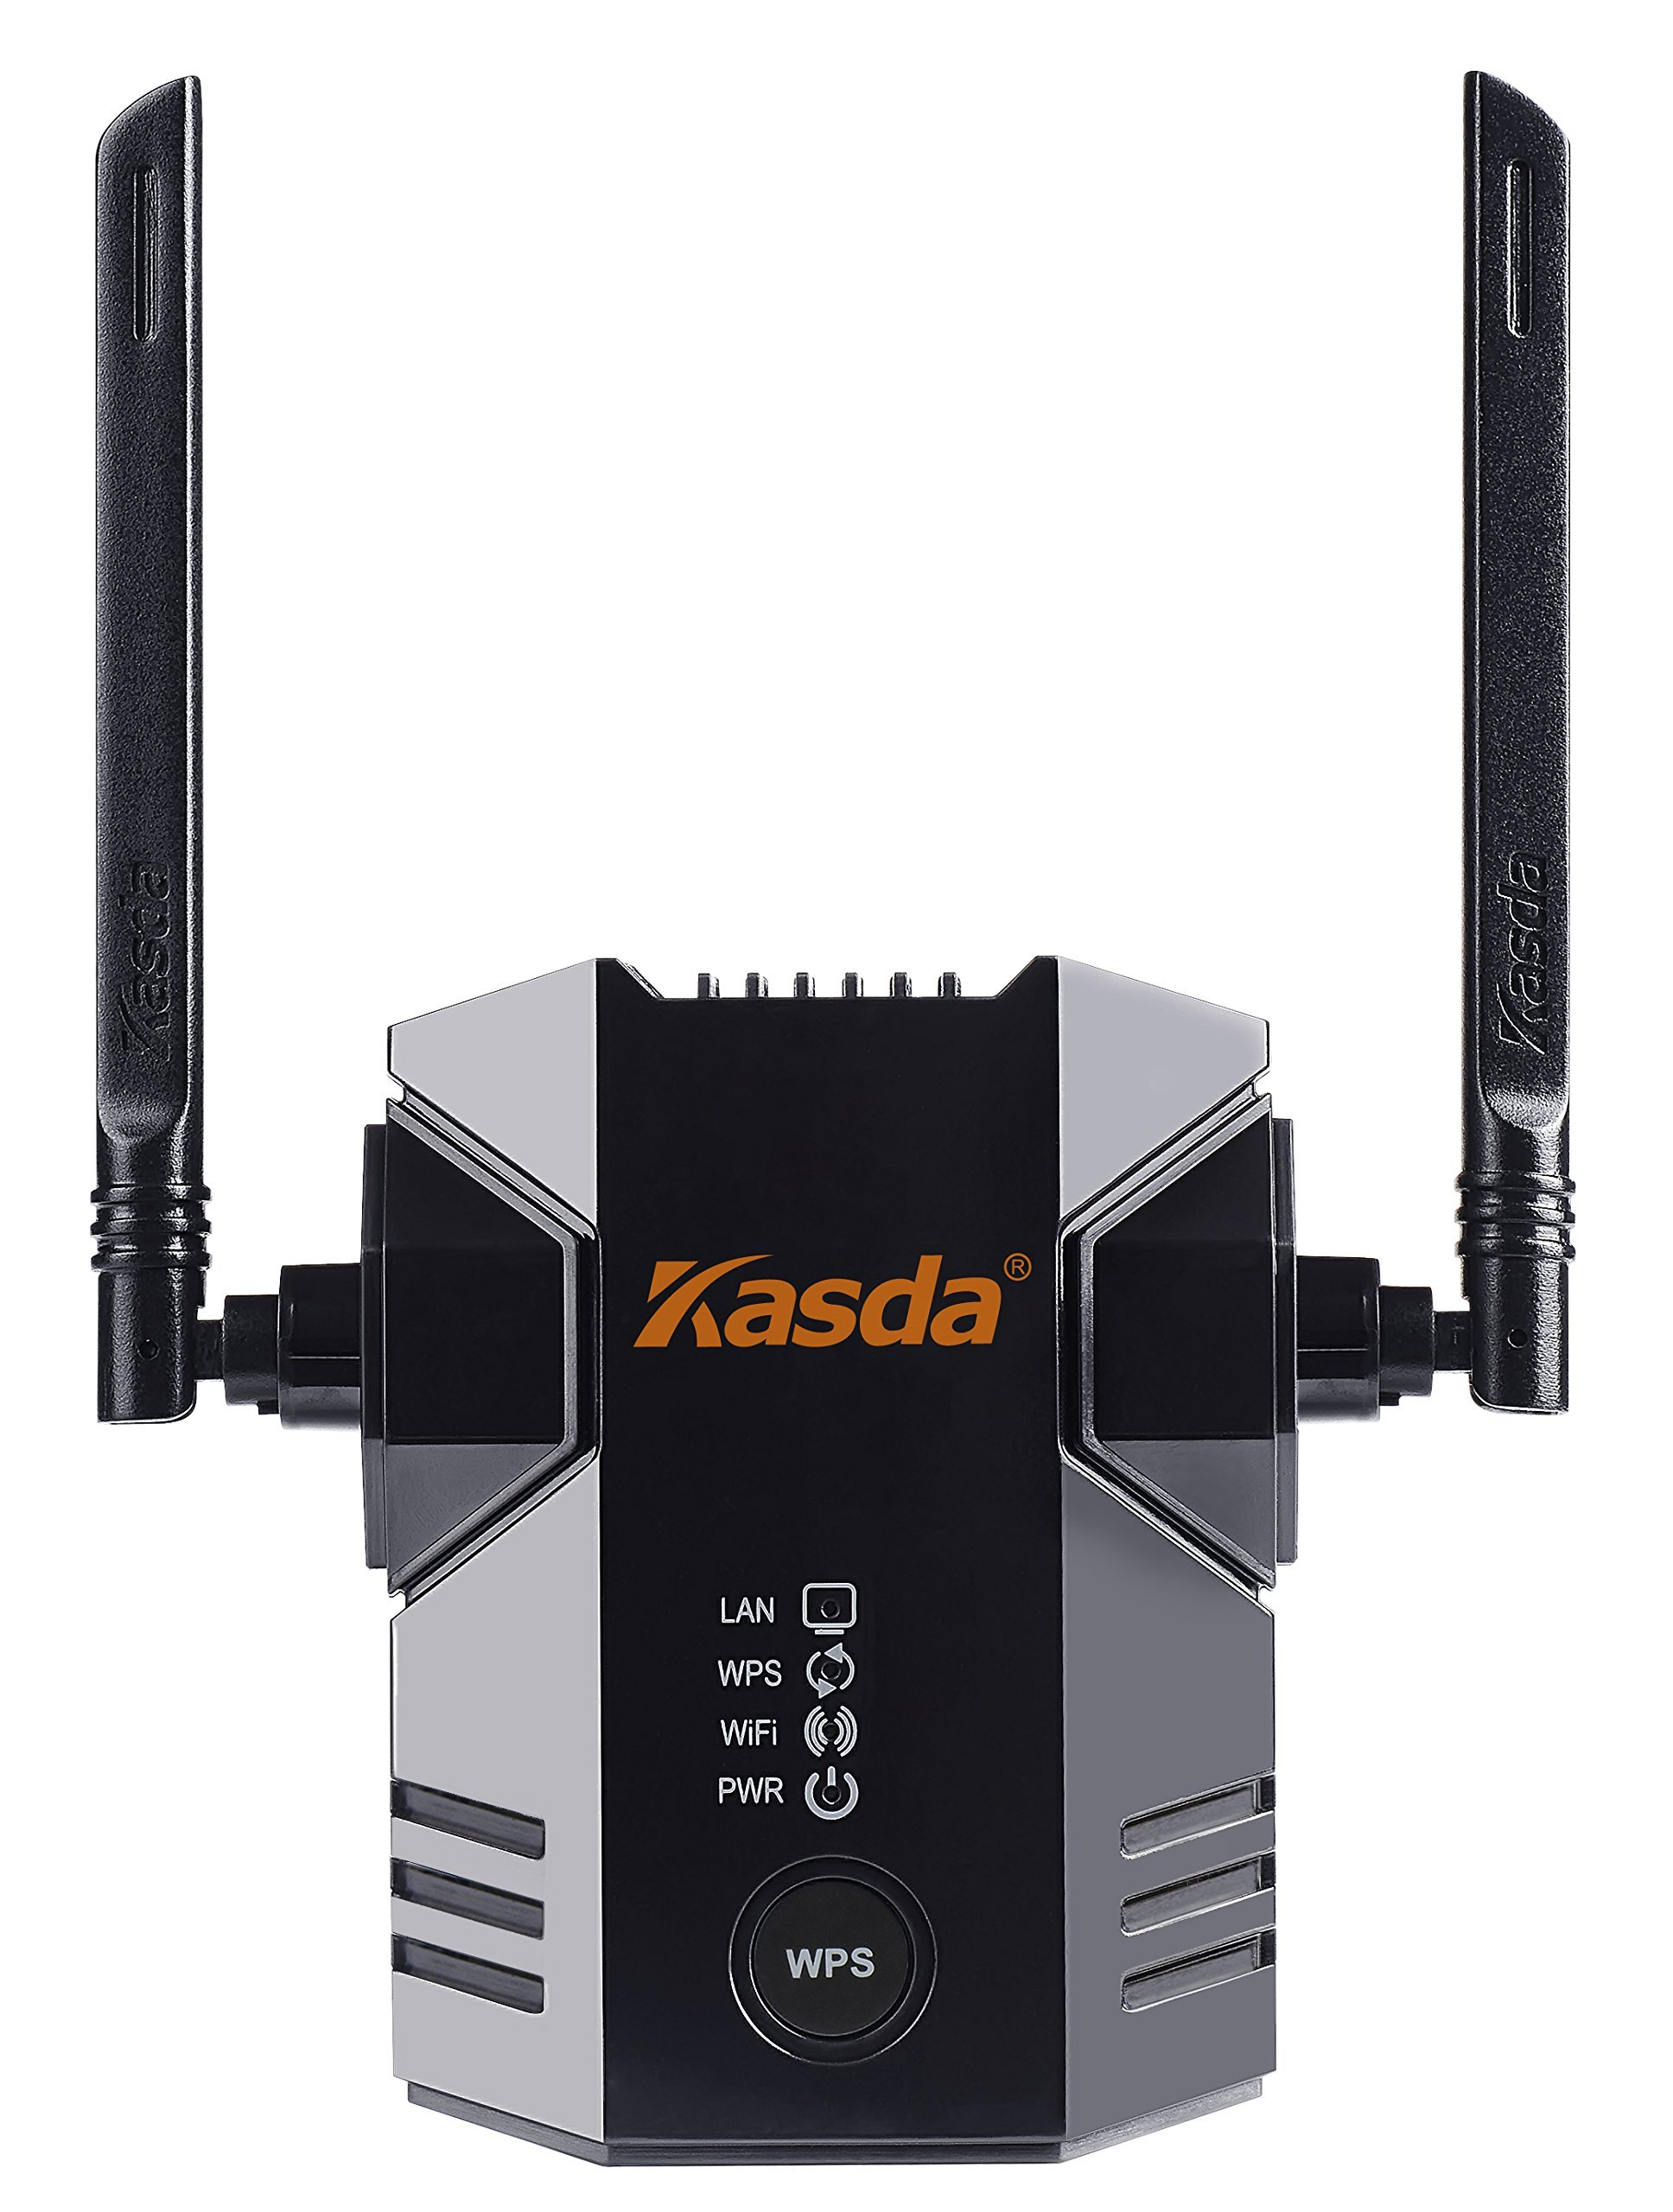 Kasda KW5583 11N WiFi Range Extender 300Mbps with 2 External Antennas WiFi Booster WiFi Repeater